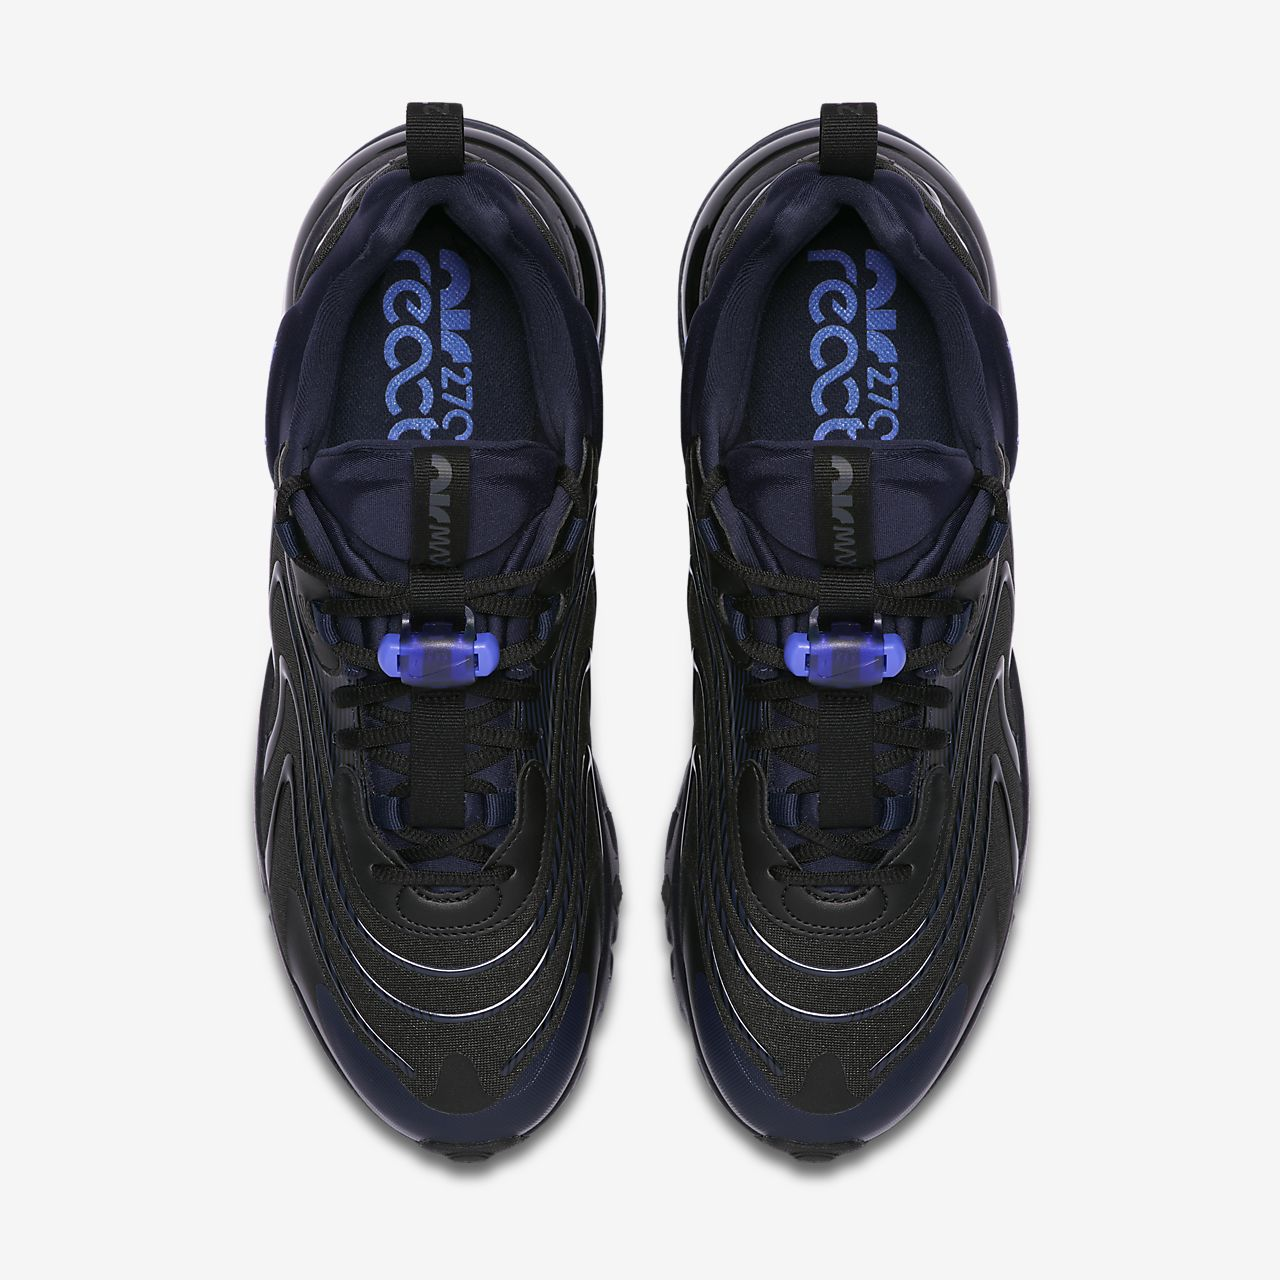 Max 270 pour Nike React ENG Homme Air Chaussure DYH2IWE9